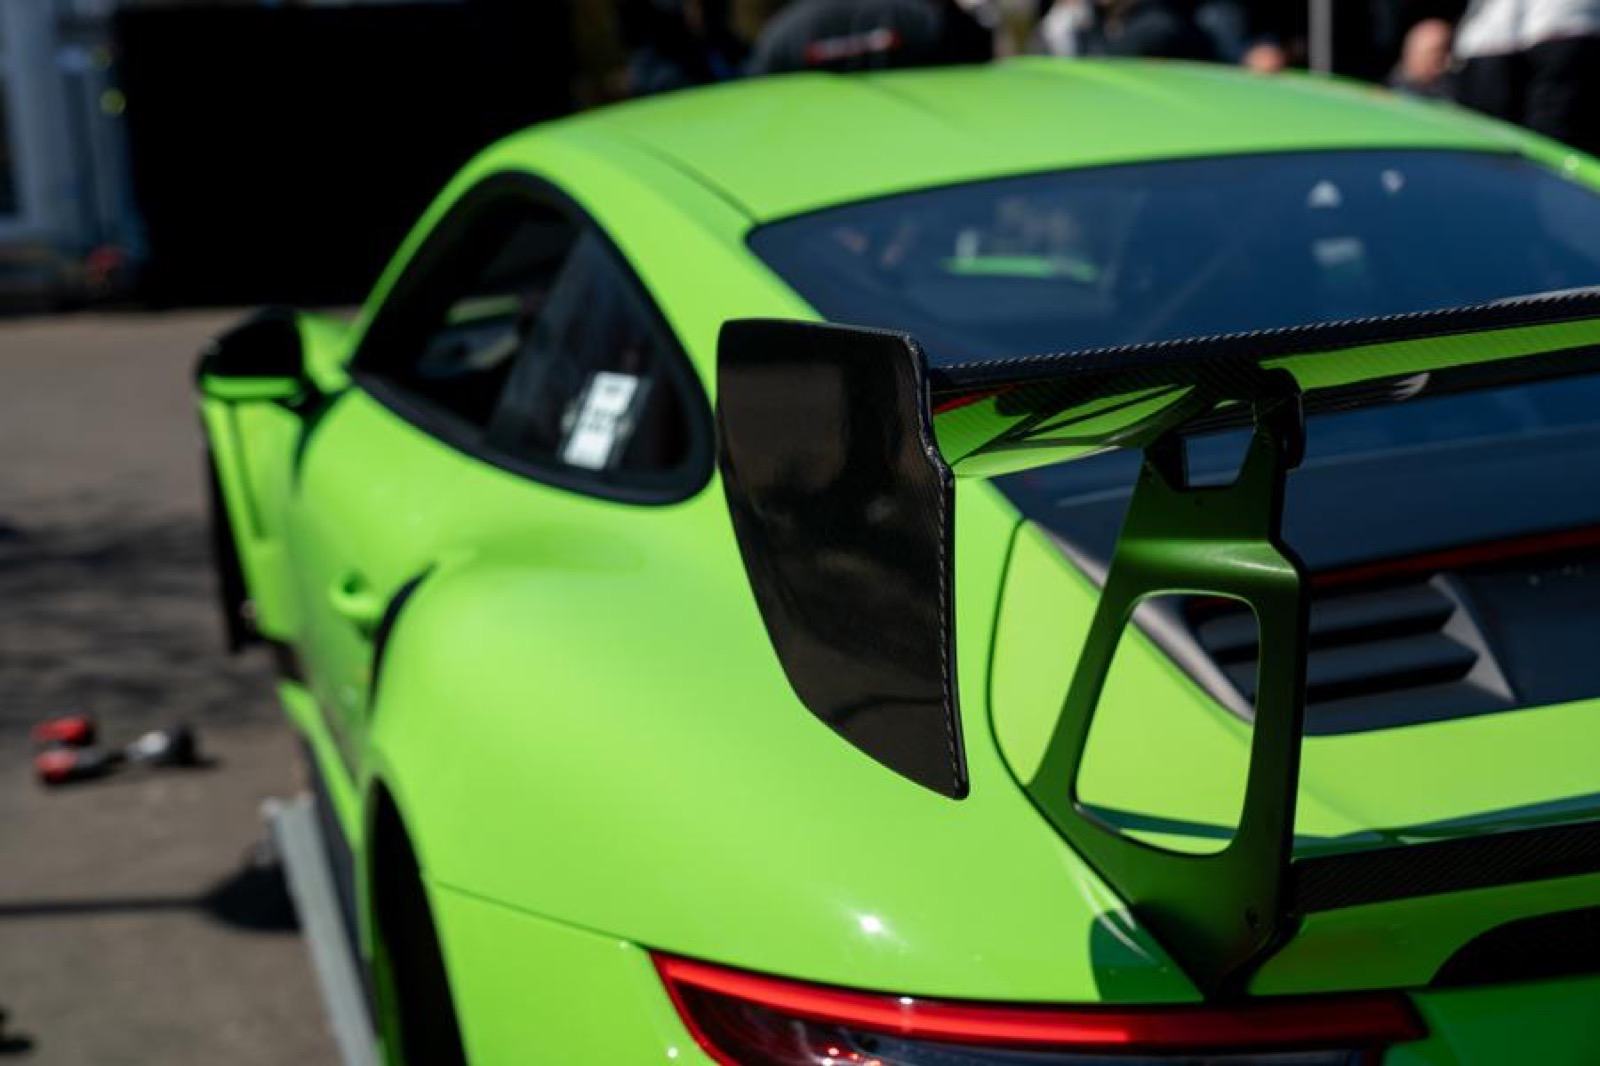 Porsche-911-GT3-RS-MR-by-Manthey-Racing-3